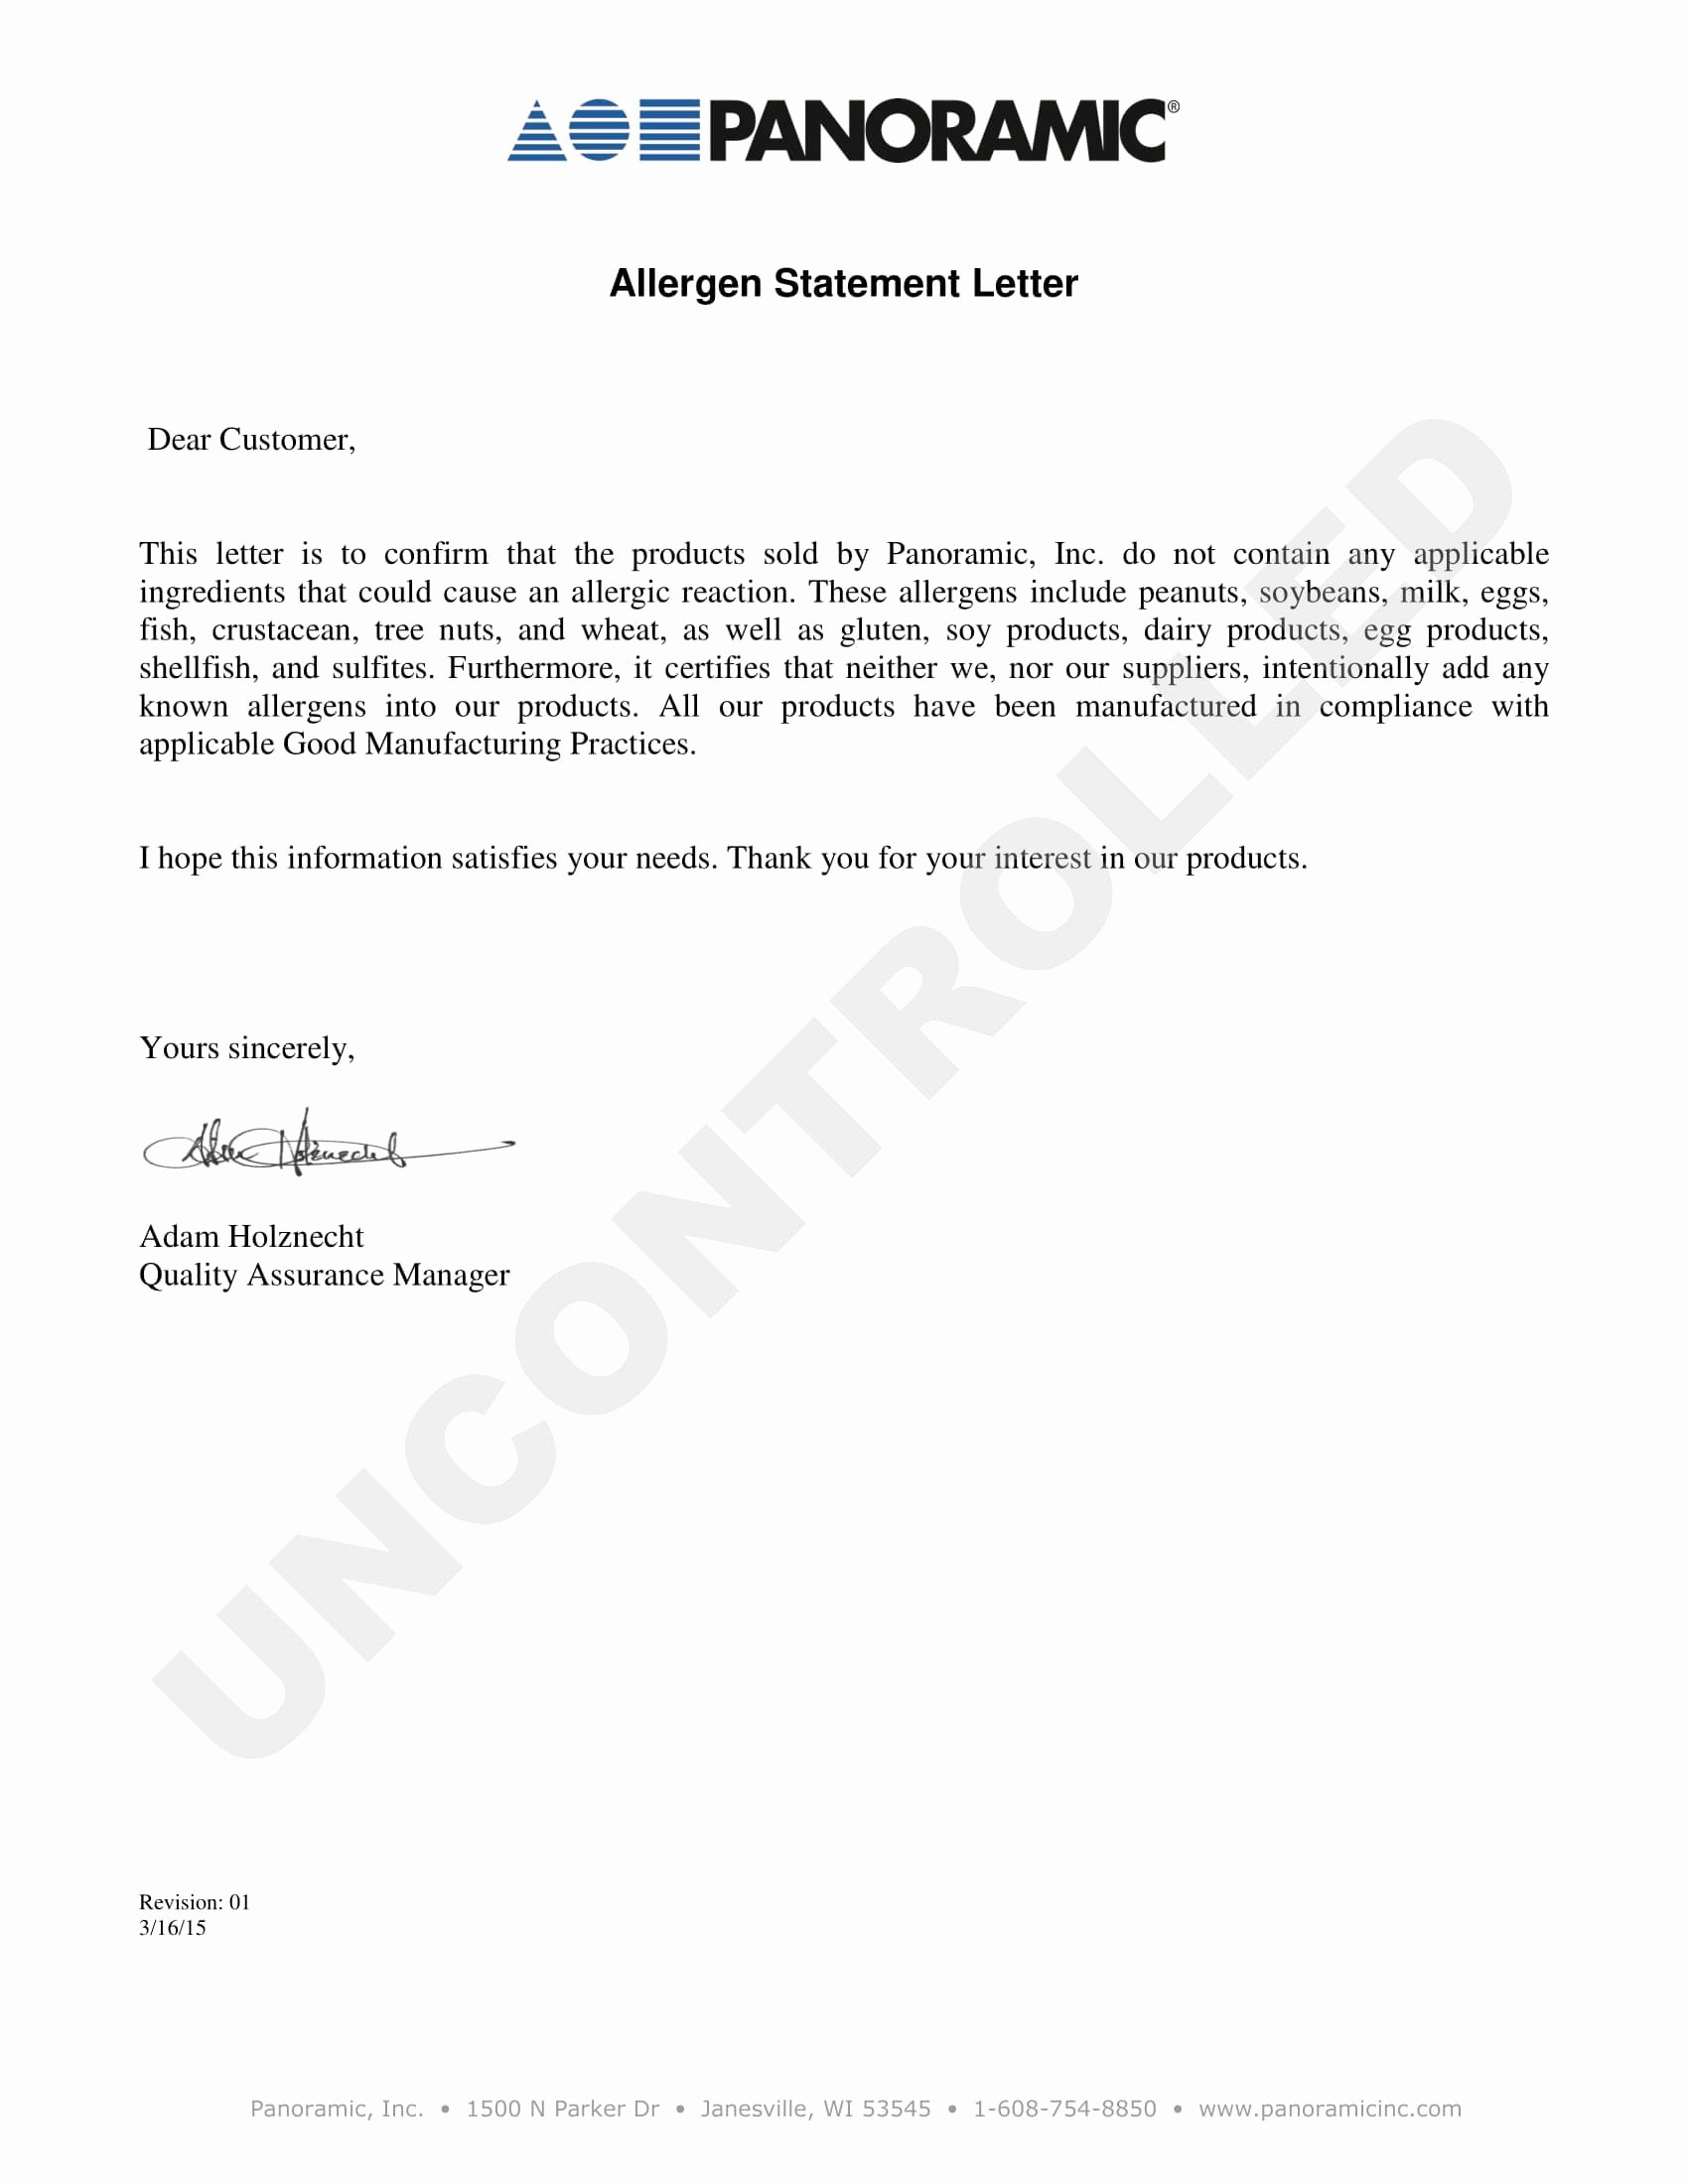 Statement Of Facts Sample Letter Inspirational 12 Ficial Statement Letter format Examples Pdf Doc